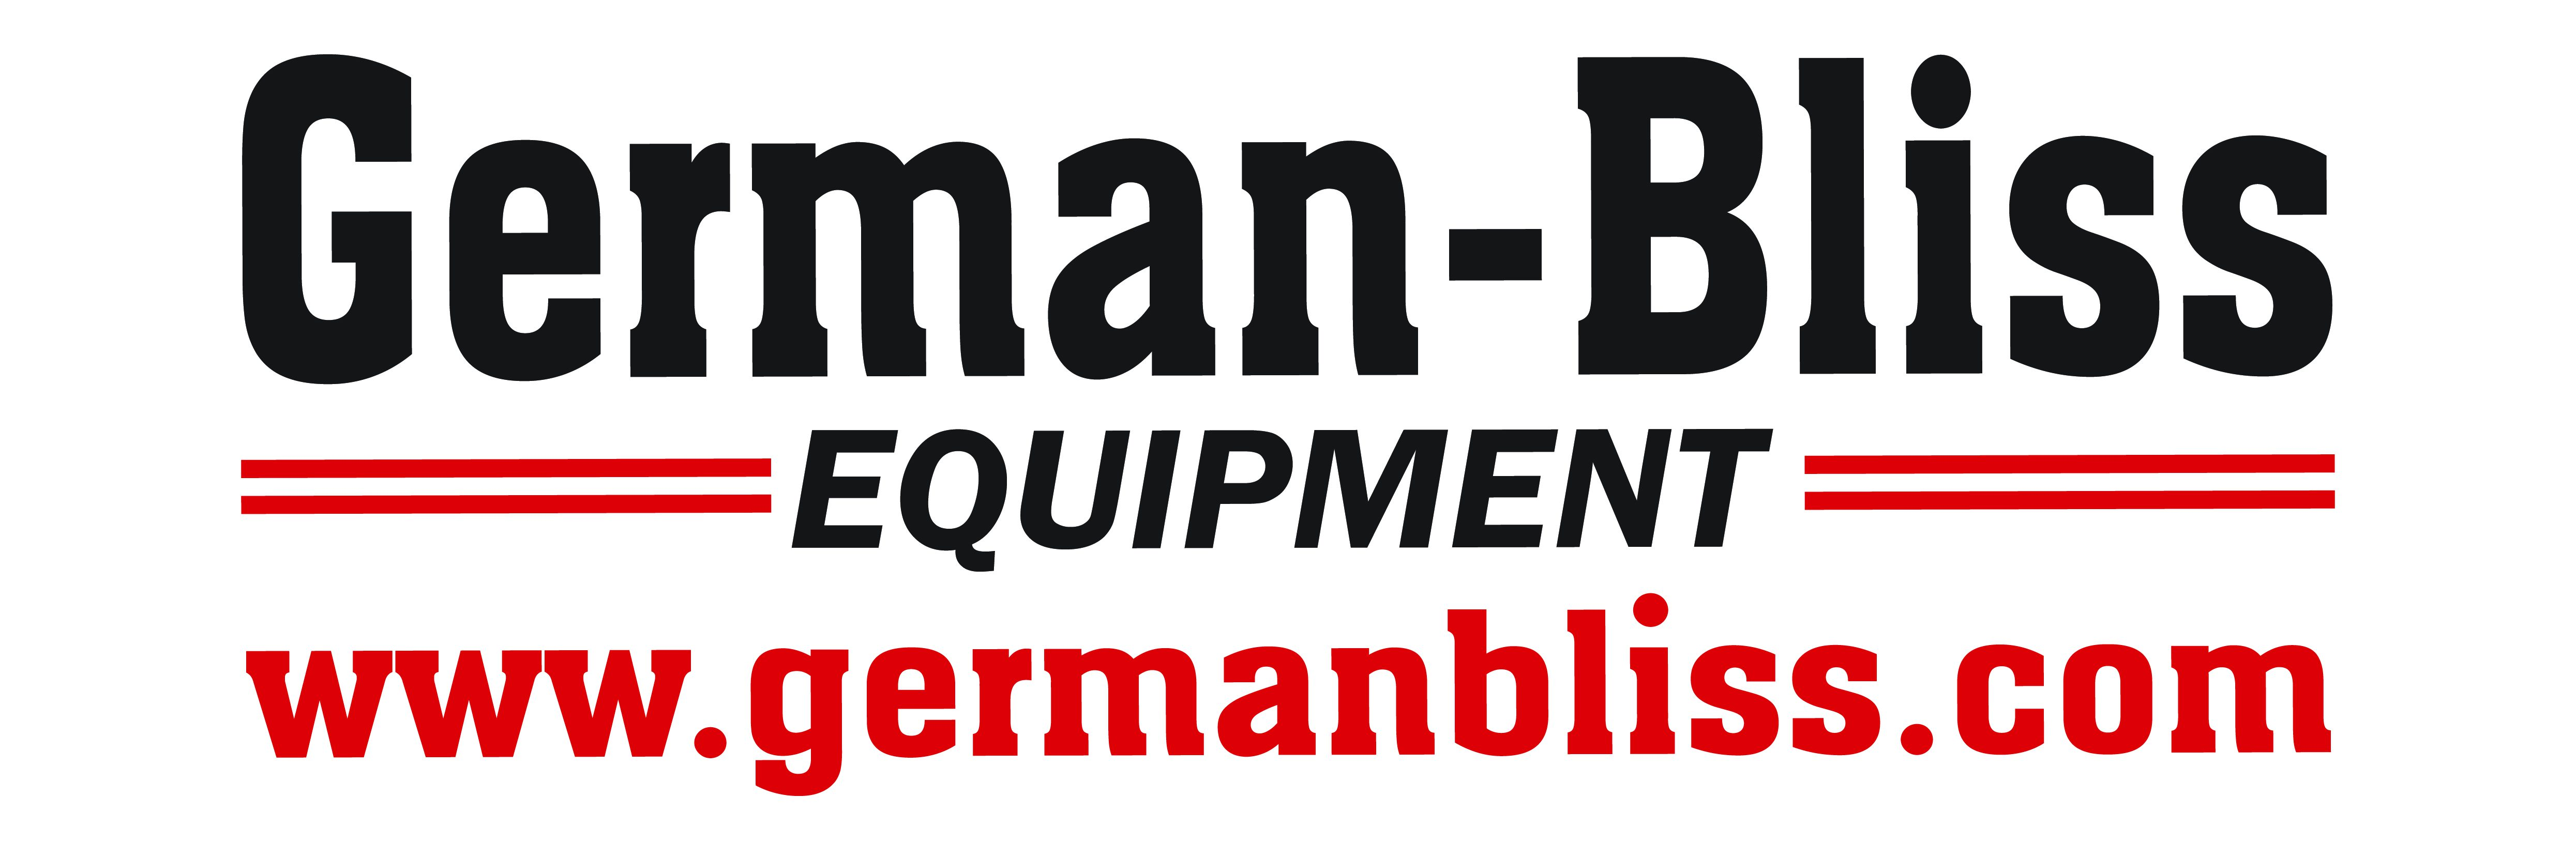 German-Bliss Equipment's Blog